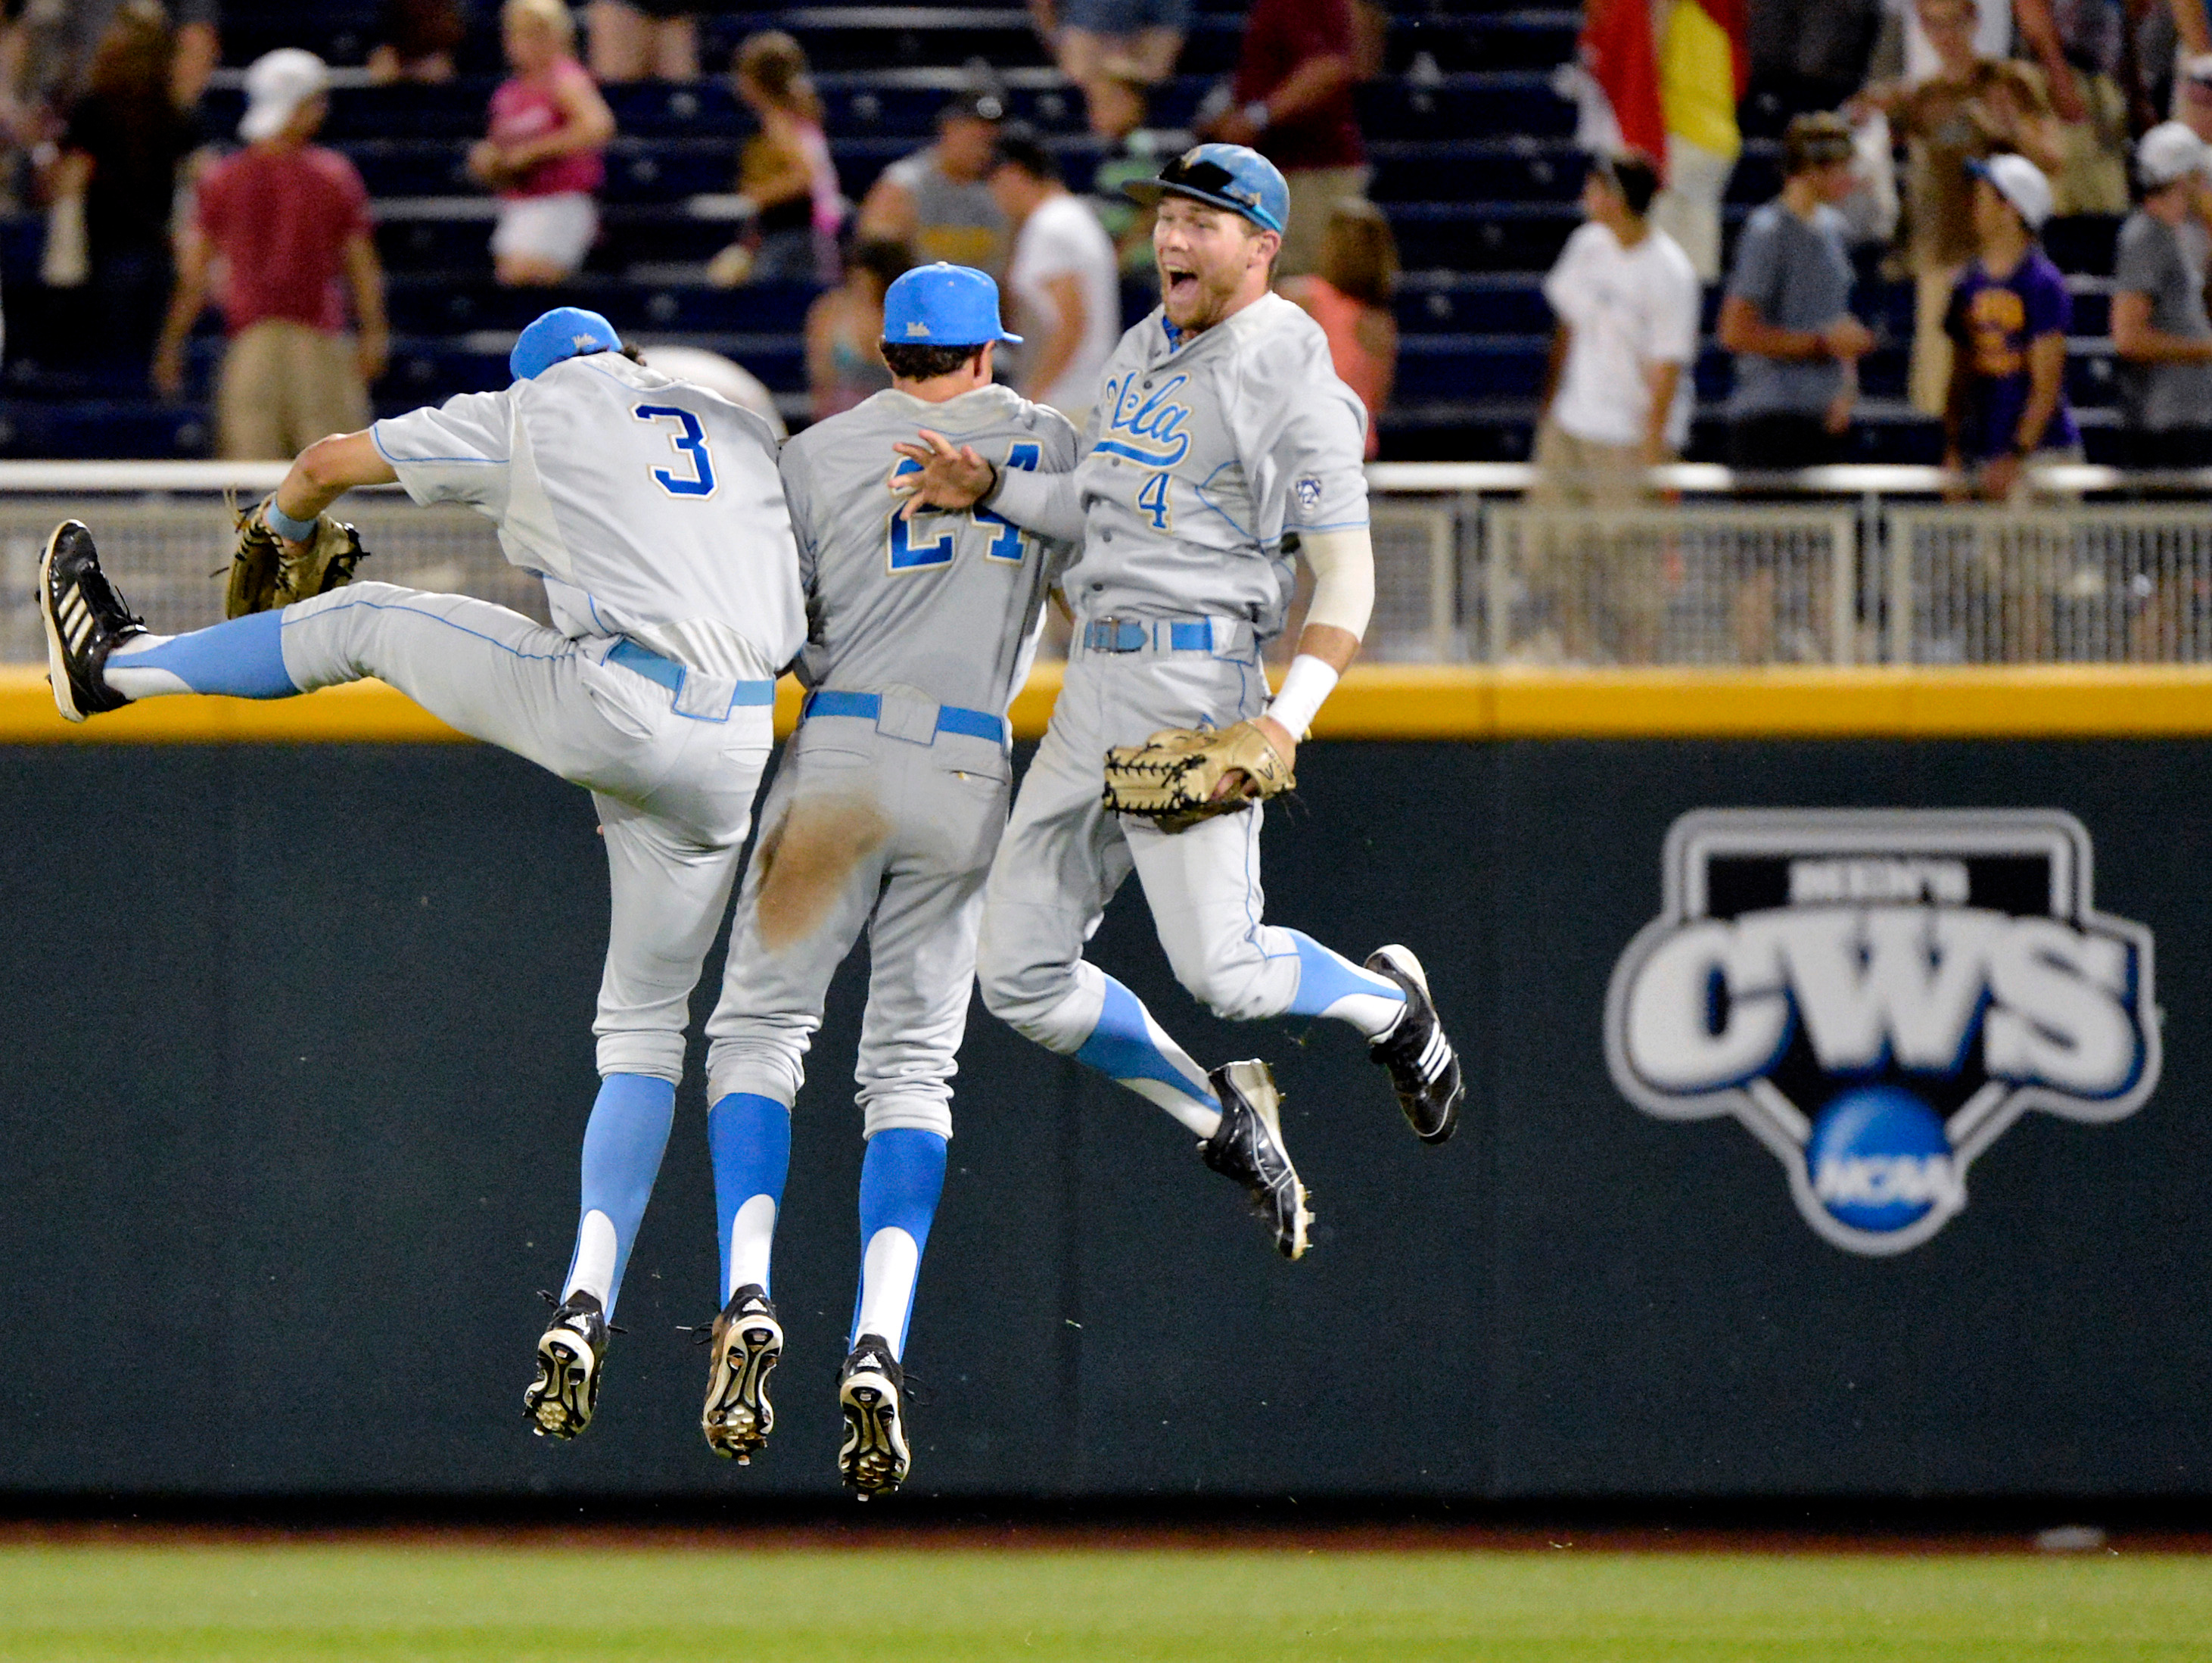 Outfielder Eric Filia (4) was a crucial part of UCLA's national title run in 2013, but missed the last two seasons due to injury and an academic suspension. (Ted Kirk/Associated Press)